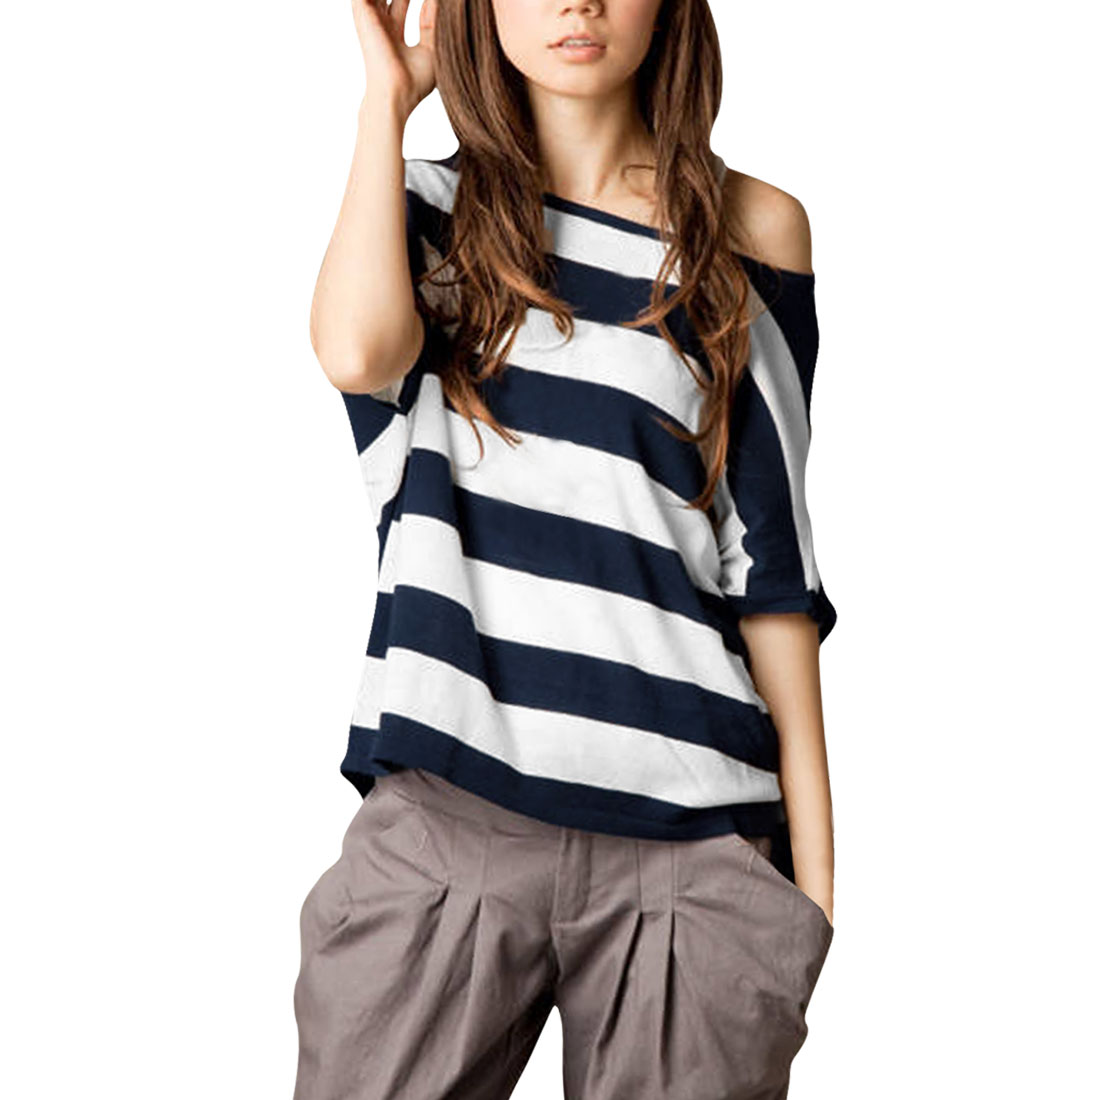 Allegra K Women's Blue Horizontal Stripes Stretchy Summer Loose Shirt (Size XL / 16)